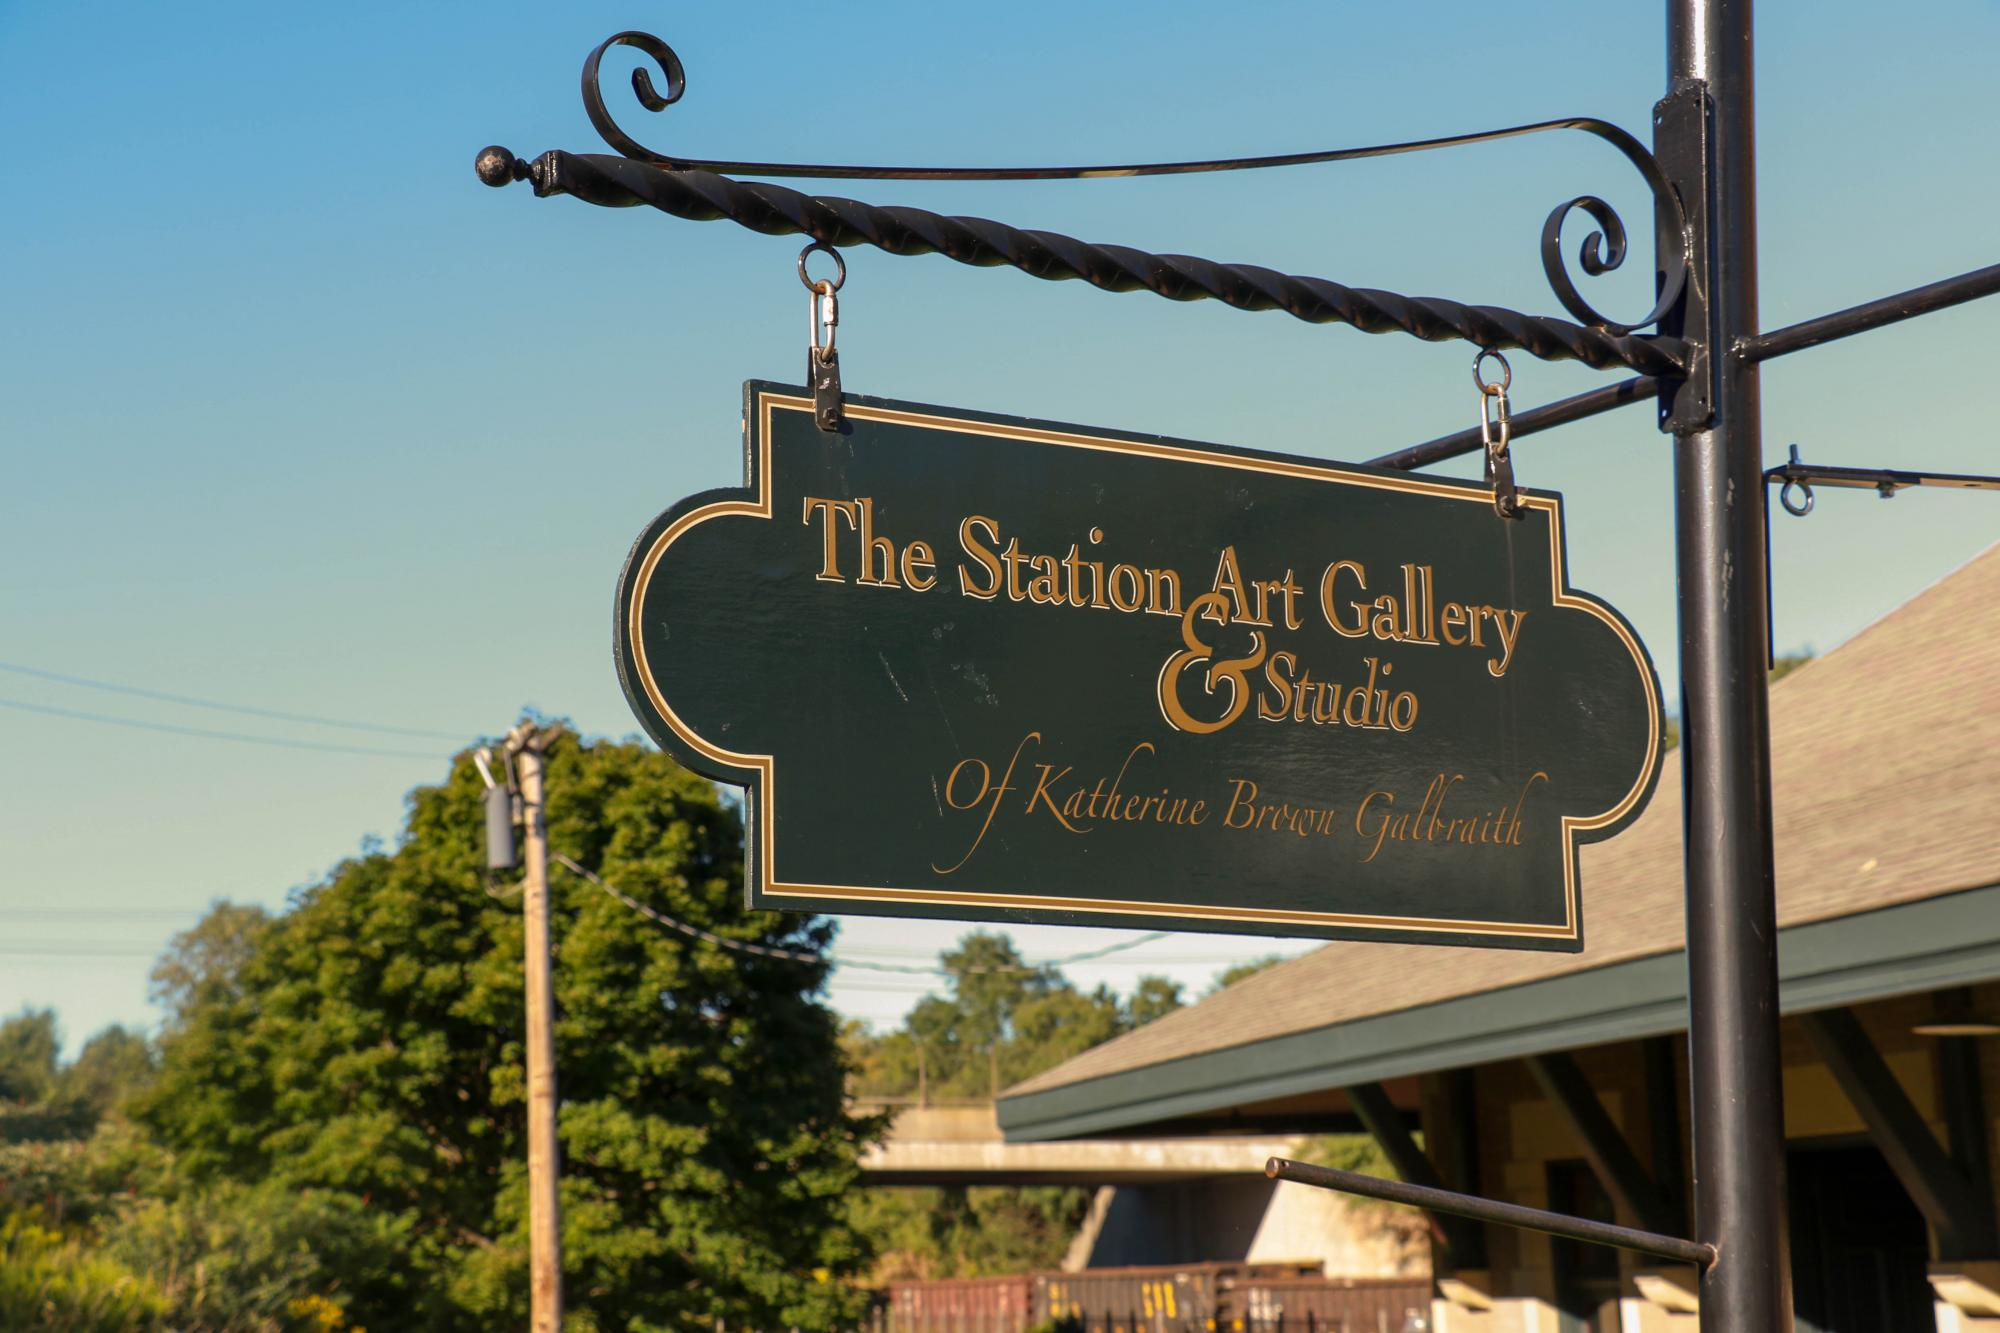 The Station Art Gallery sign